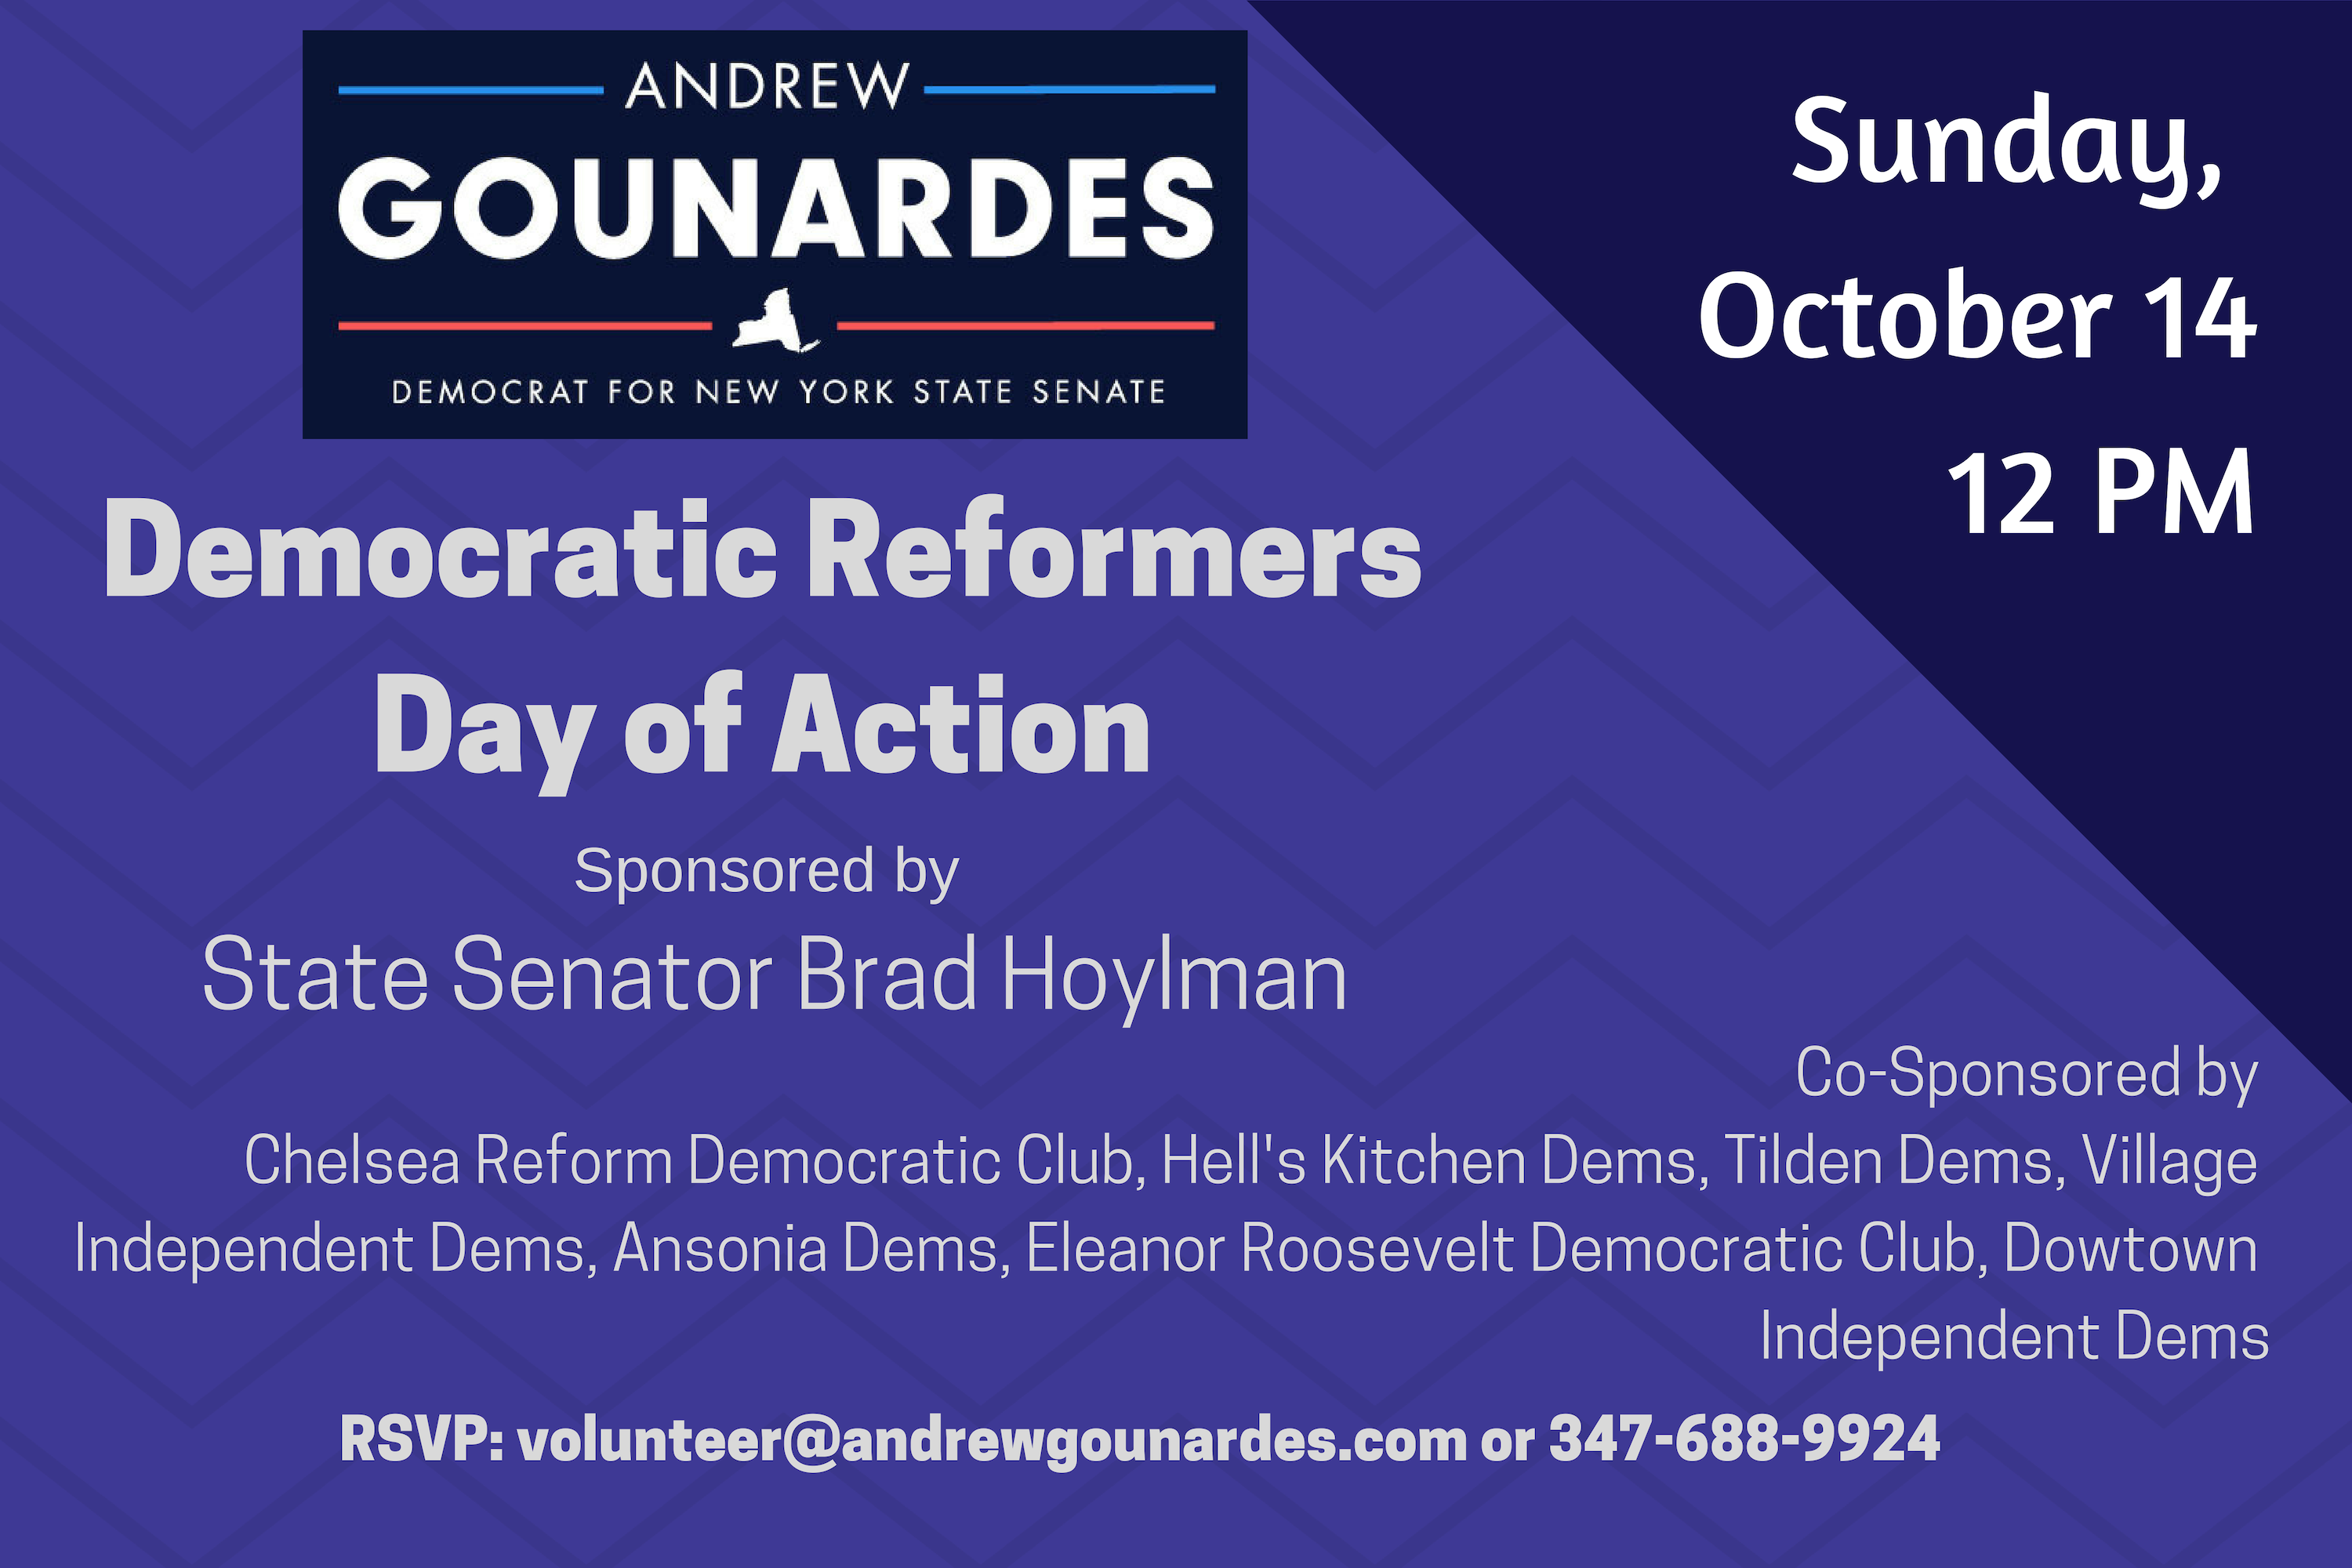 Democratic Reformers Day of Action